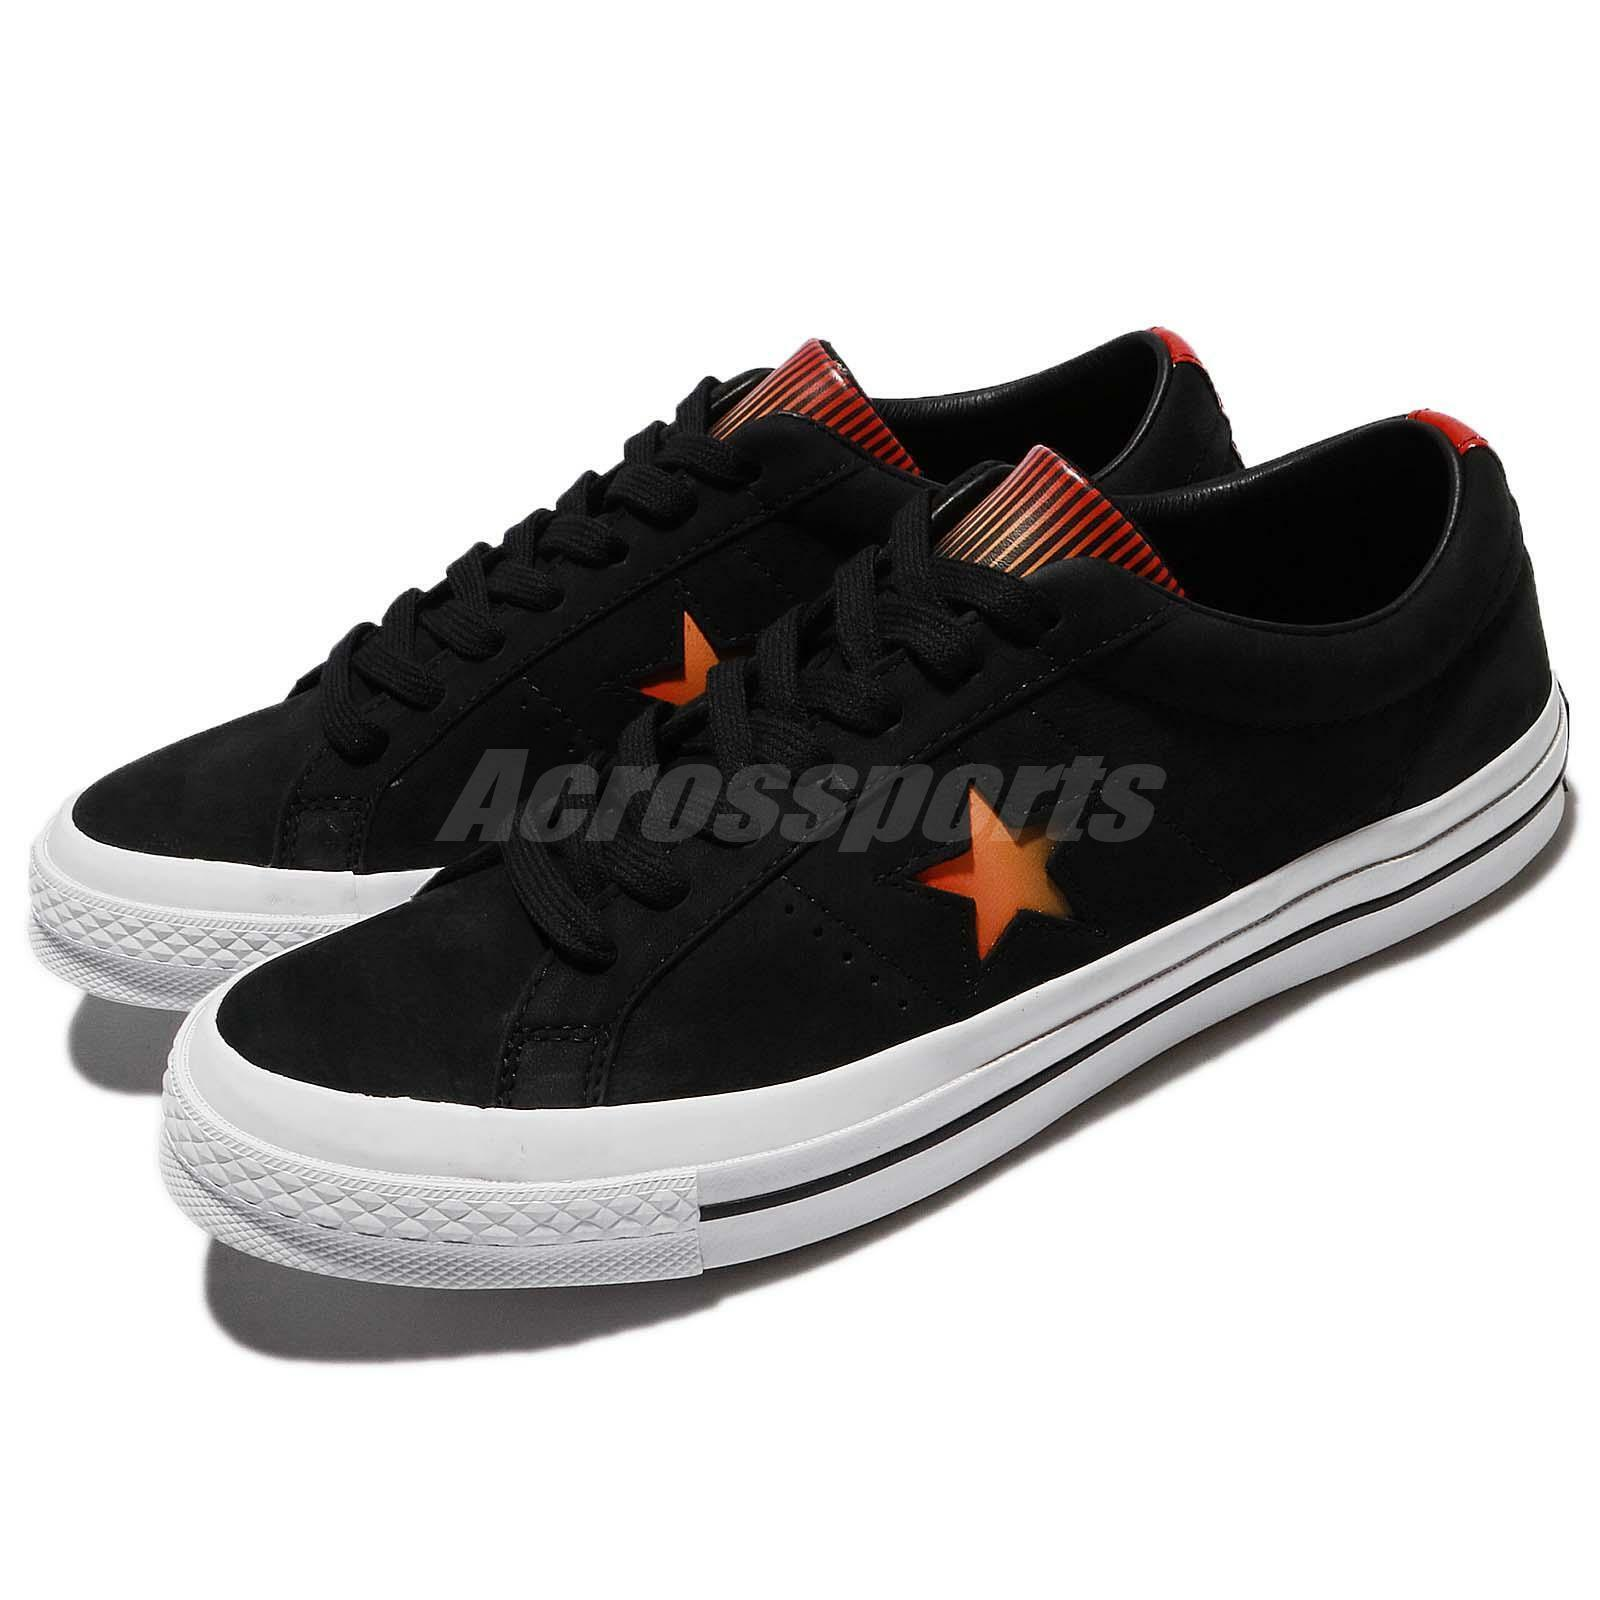 Converse One Star Year Of The Dog Solar  Pack Negro Hombre Zapatos  Solar Zapatillas 160339C 41260a